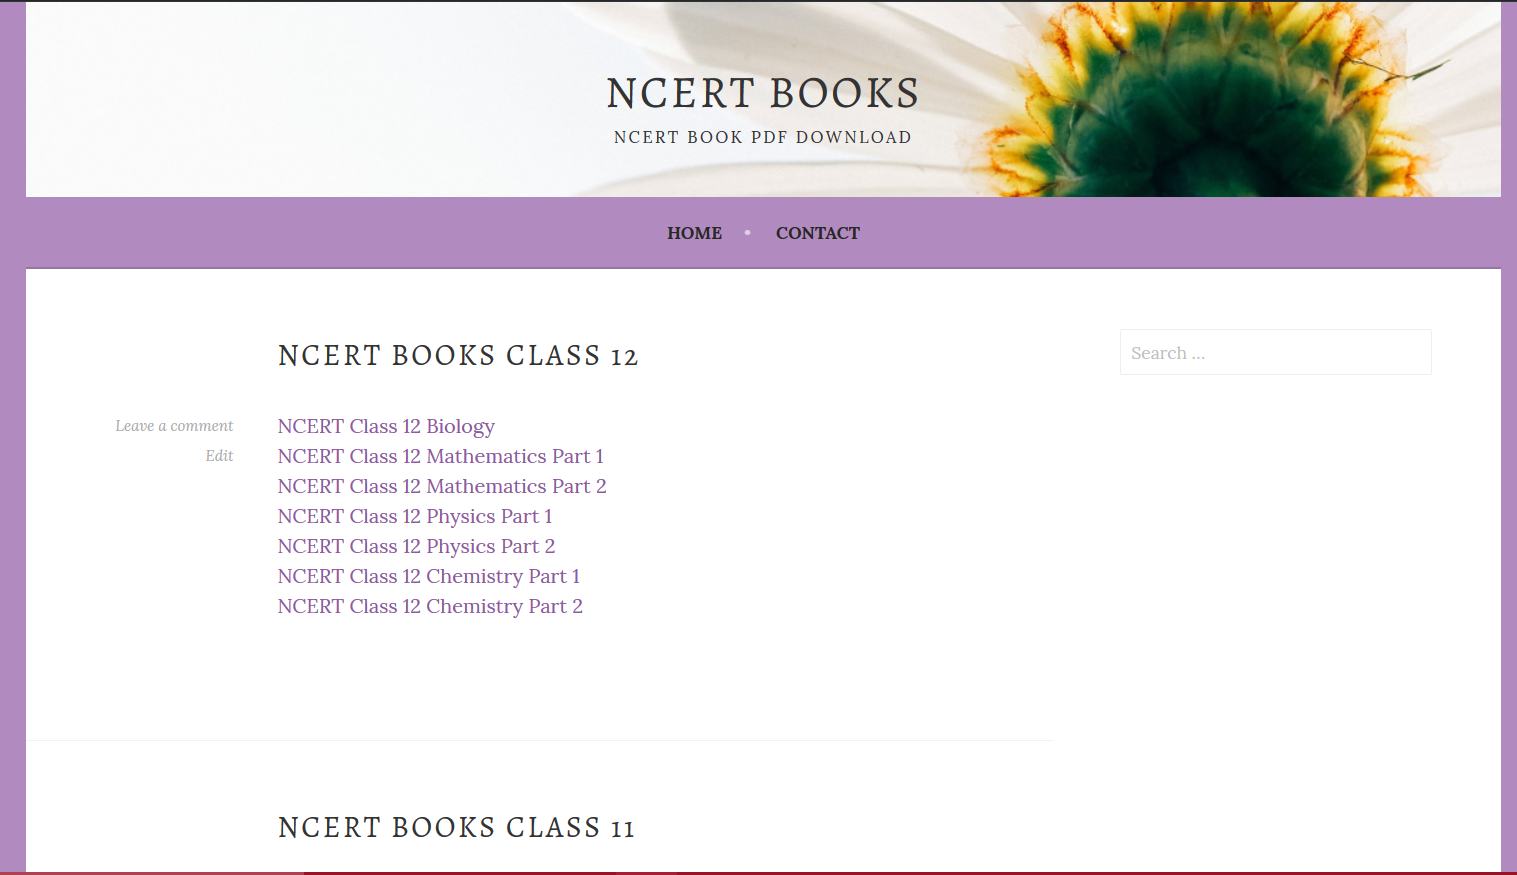 Where can I download the PDF formats of NCERT books? - Quora